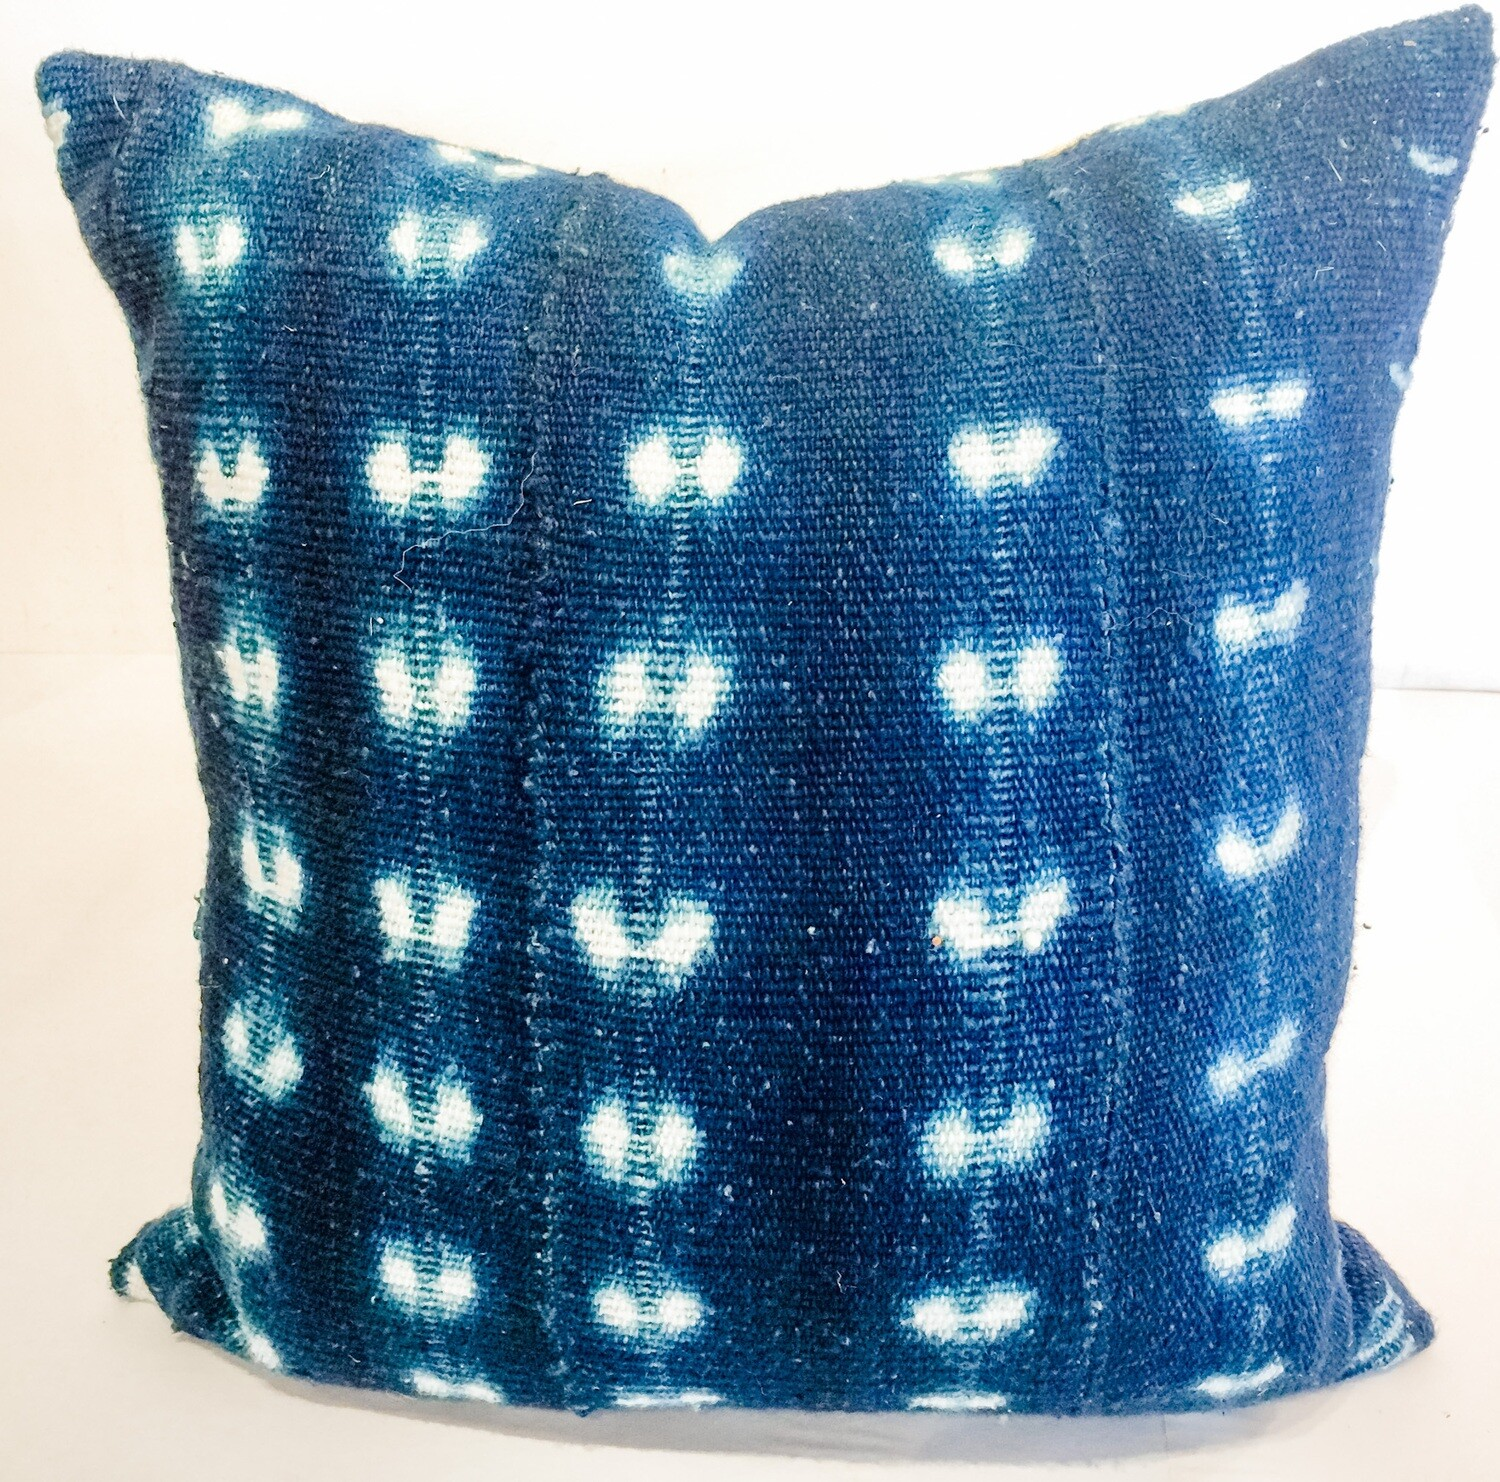 "HH007 Indigo Pillow 15"" x 15"""